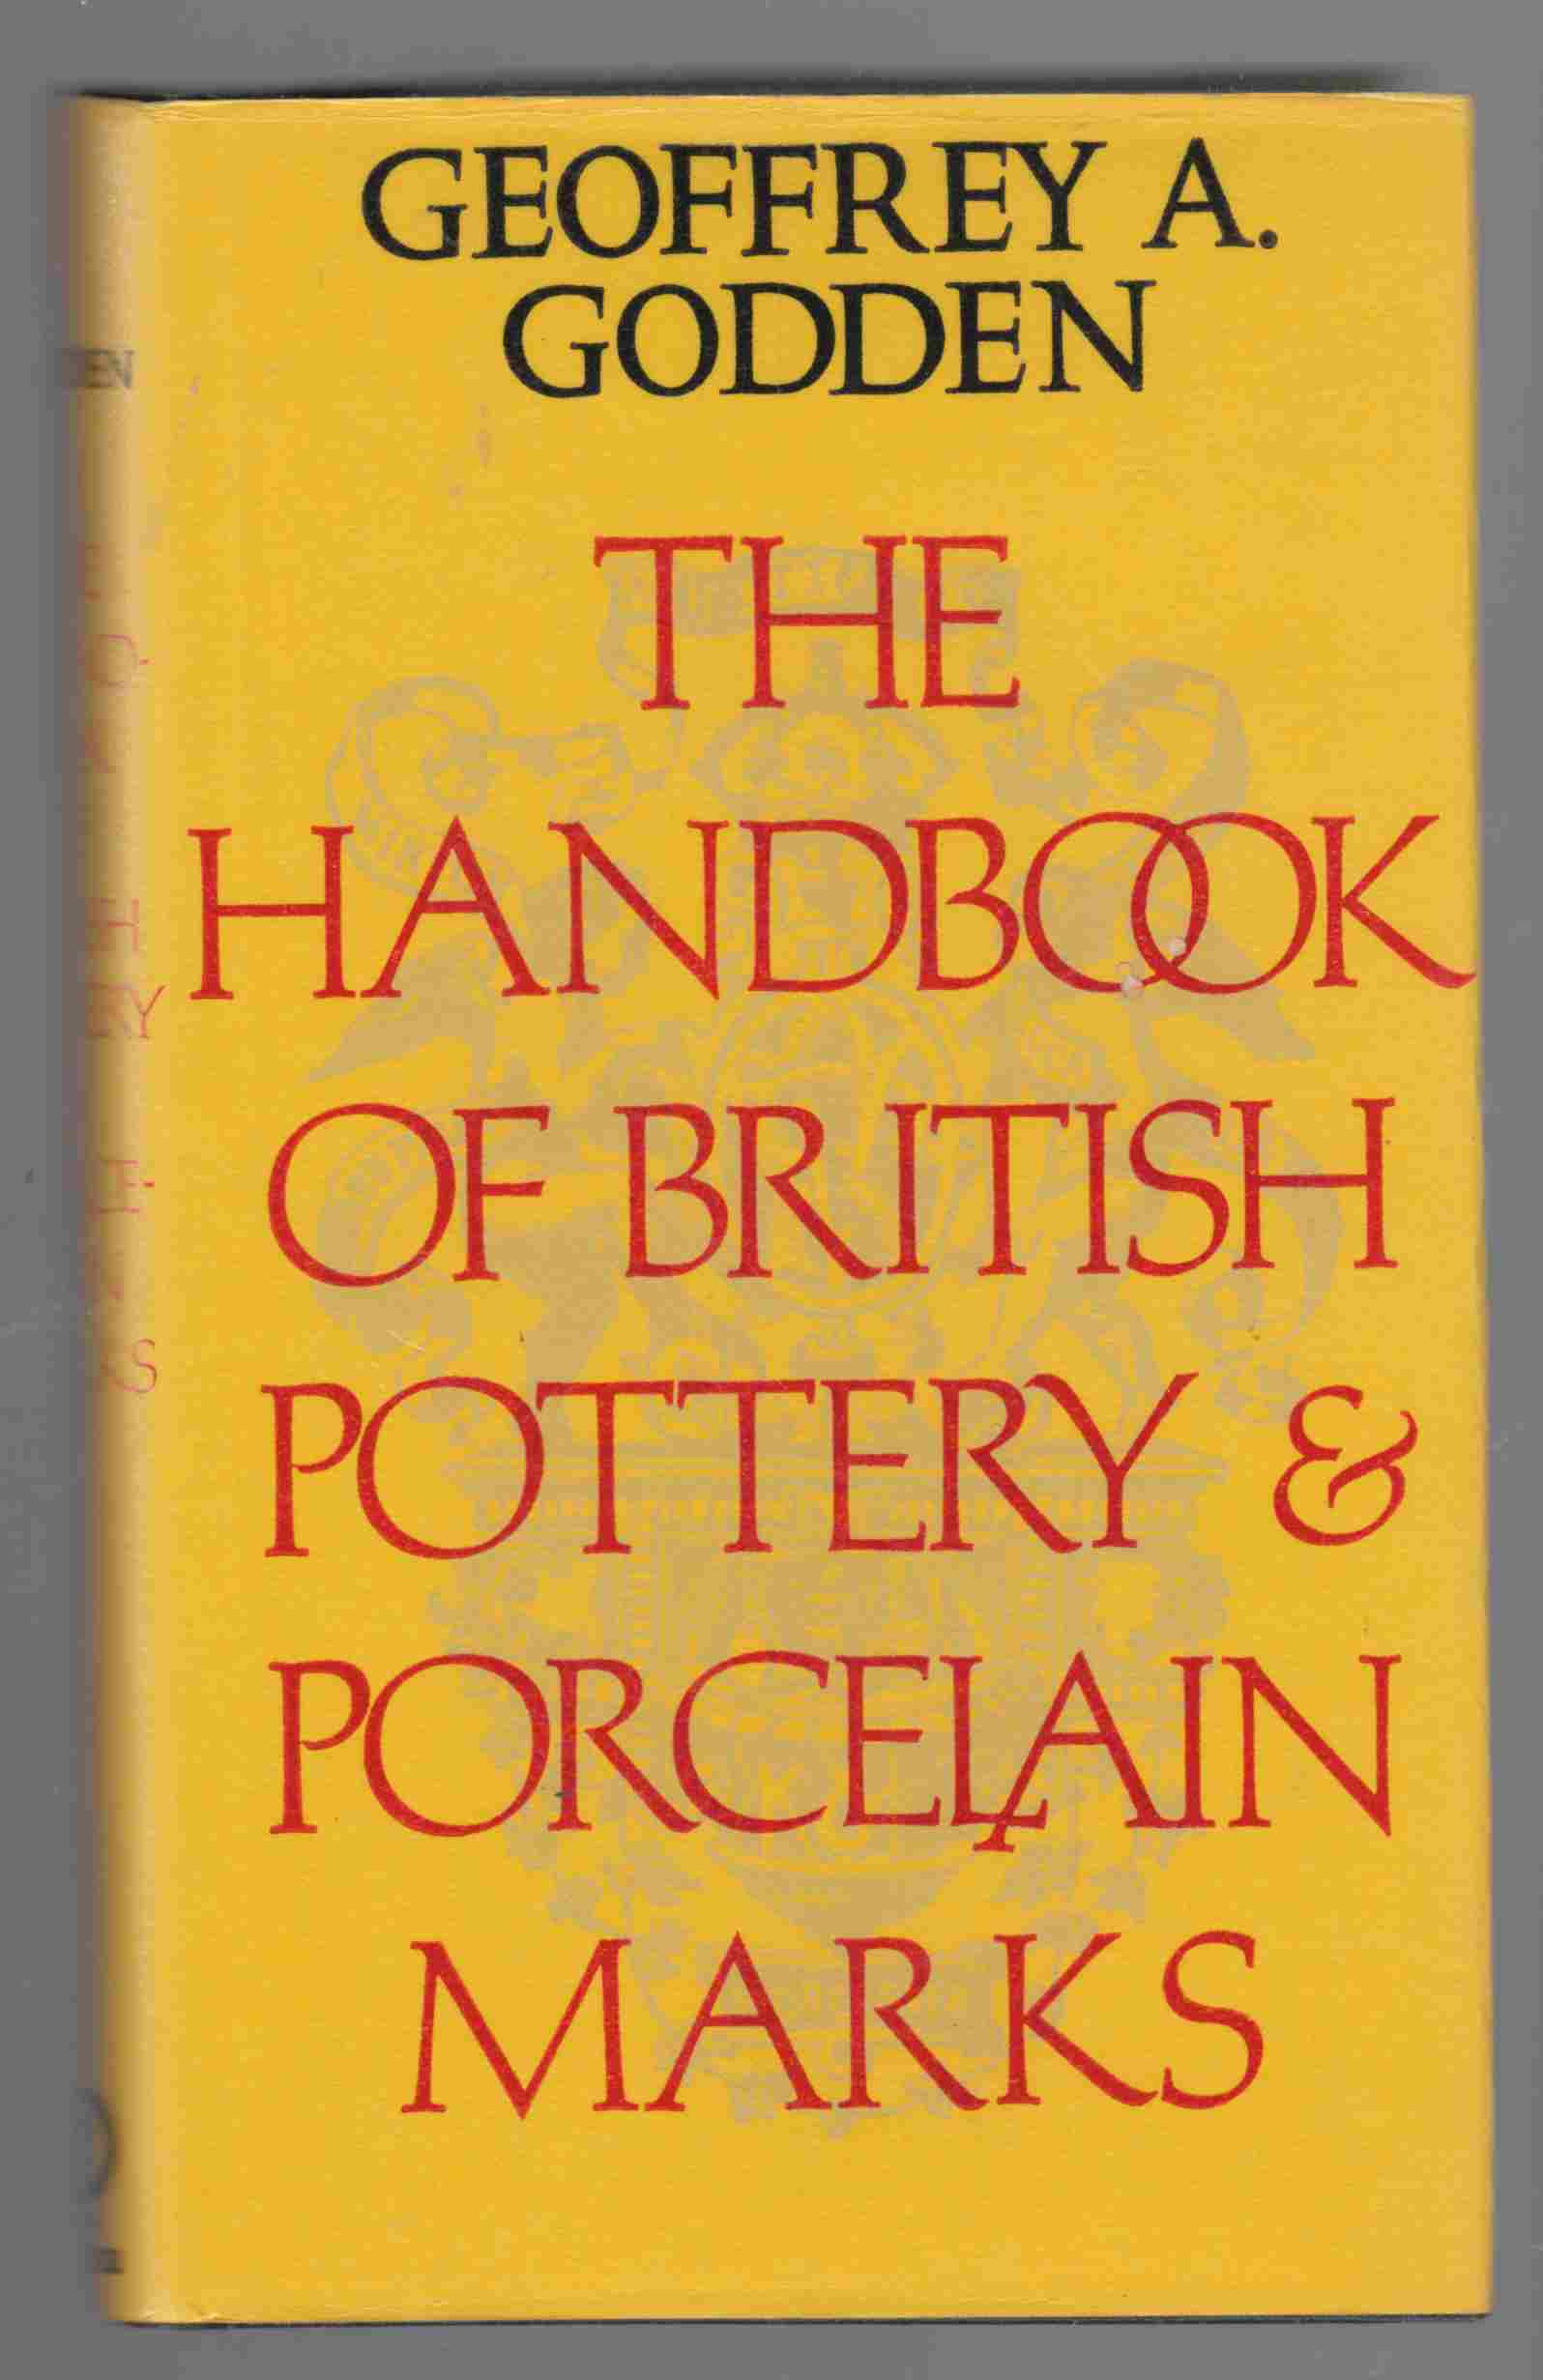 Image for The Handbook of British Pottery and Porcelain Marks